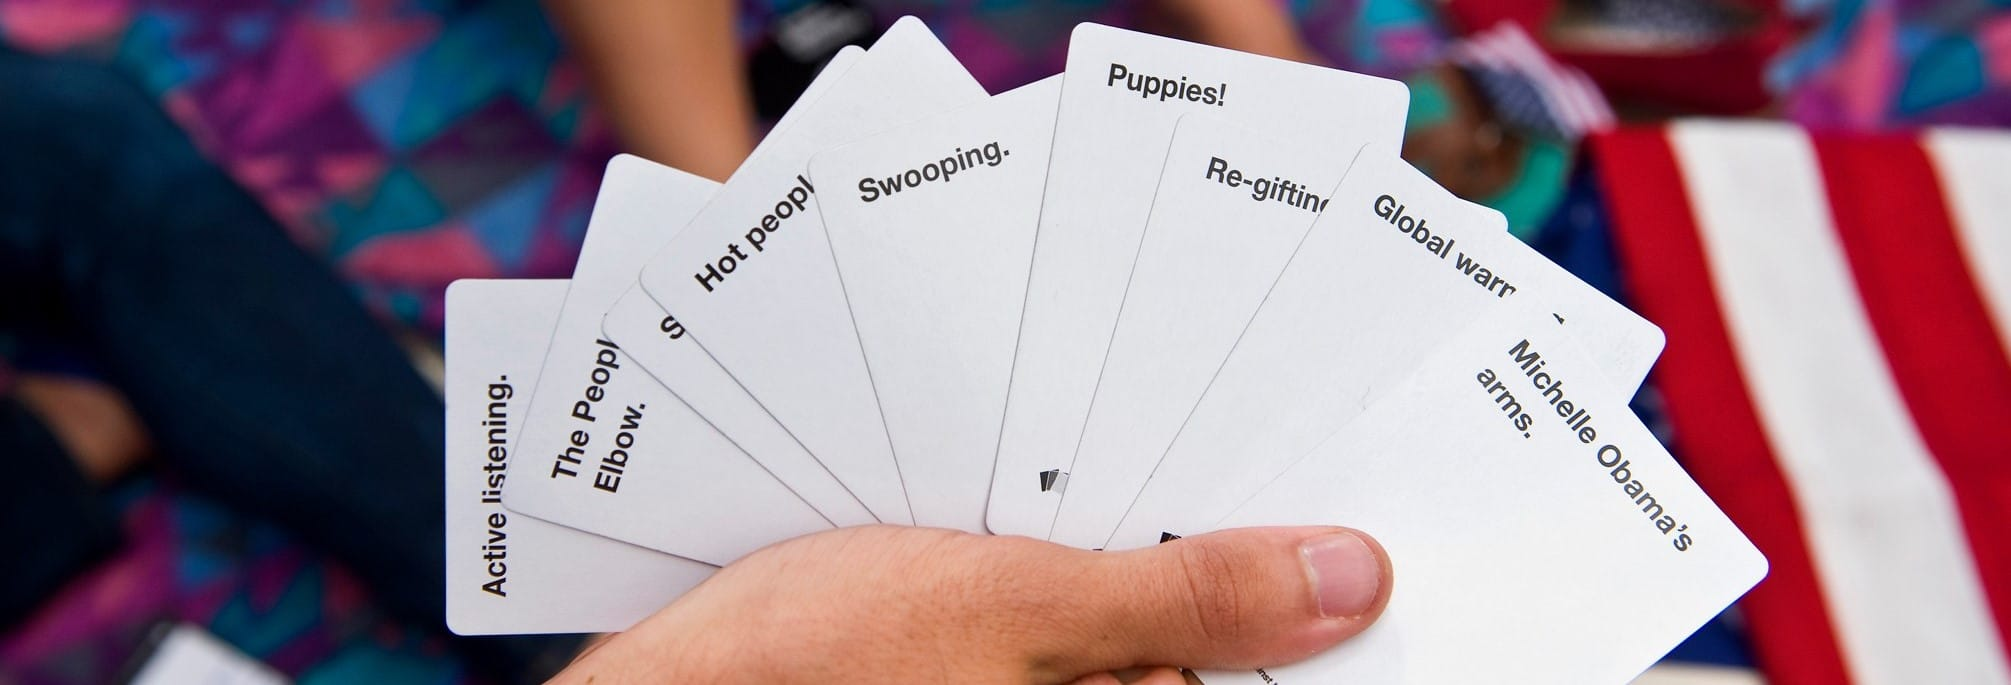 Best Adult Card Games Reviewed in Detail